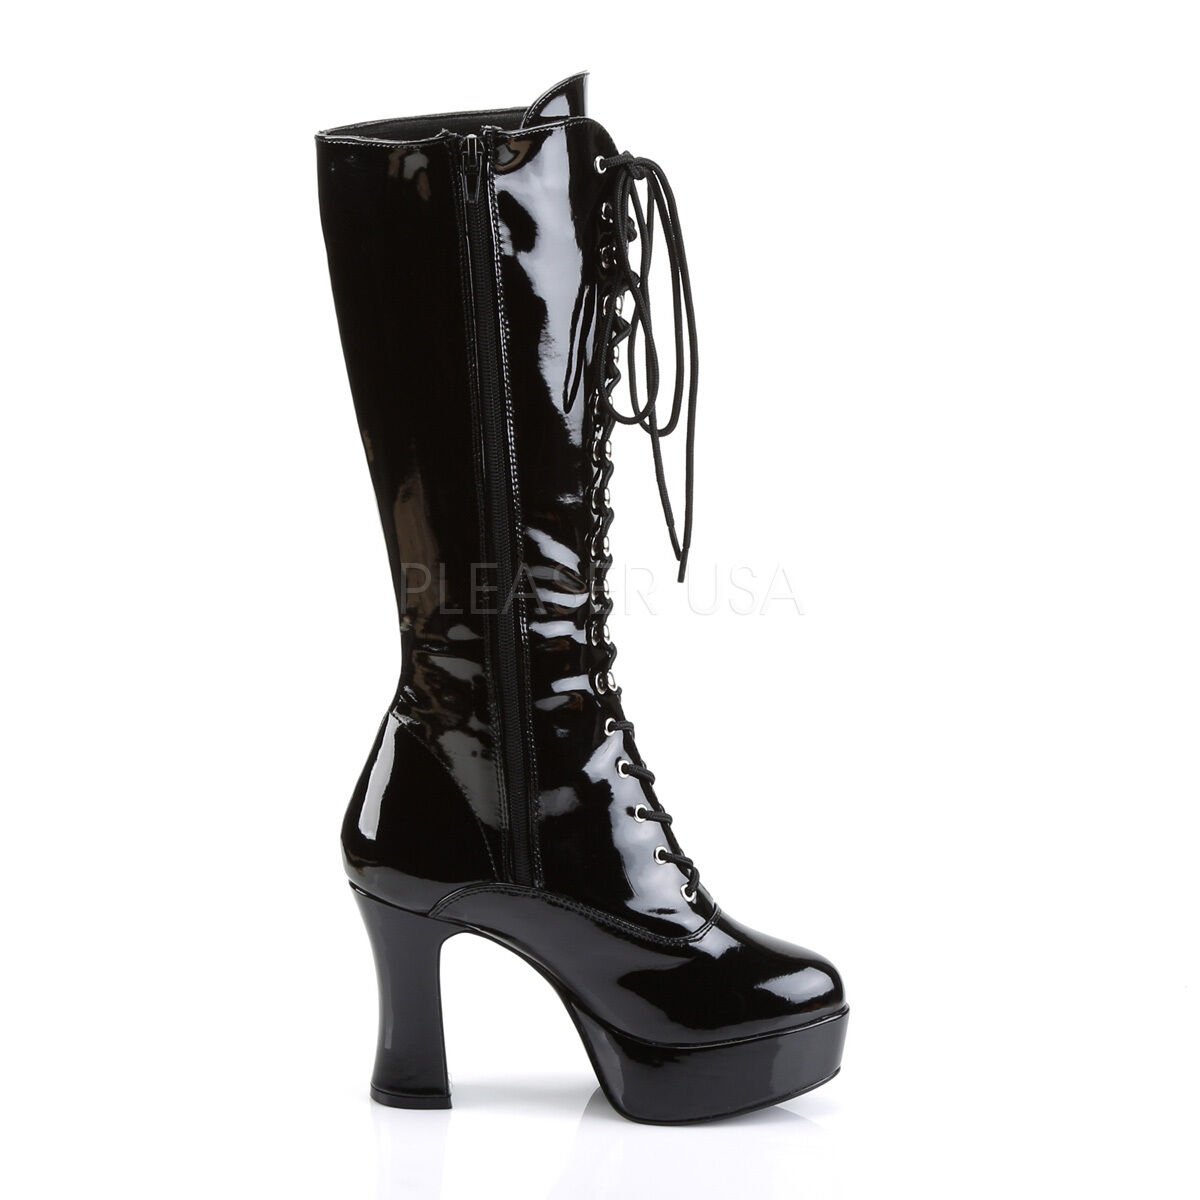 EXO2020 EXO2020 EXO2020 B Womens Black Patent Platform 4  Chunky Heel Lace Up Costume Knee Boots 10d512